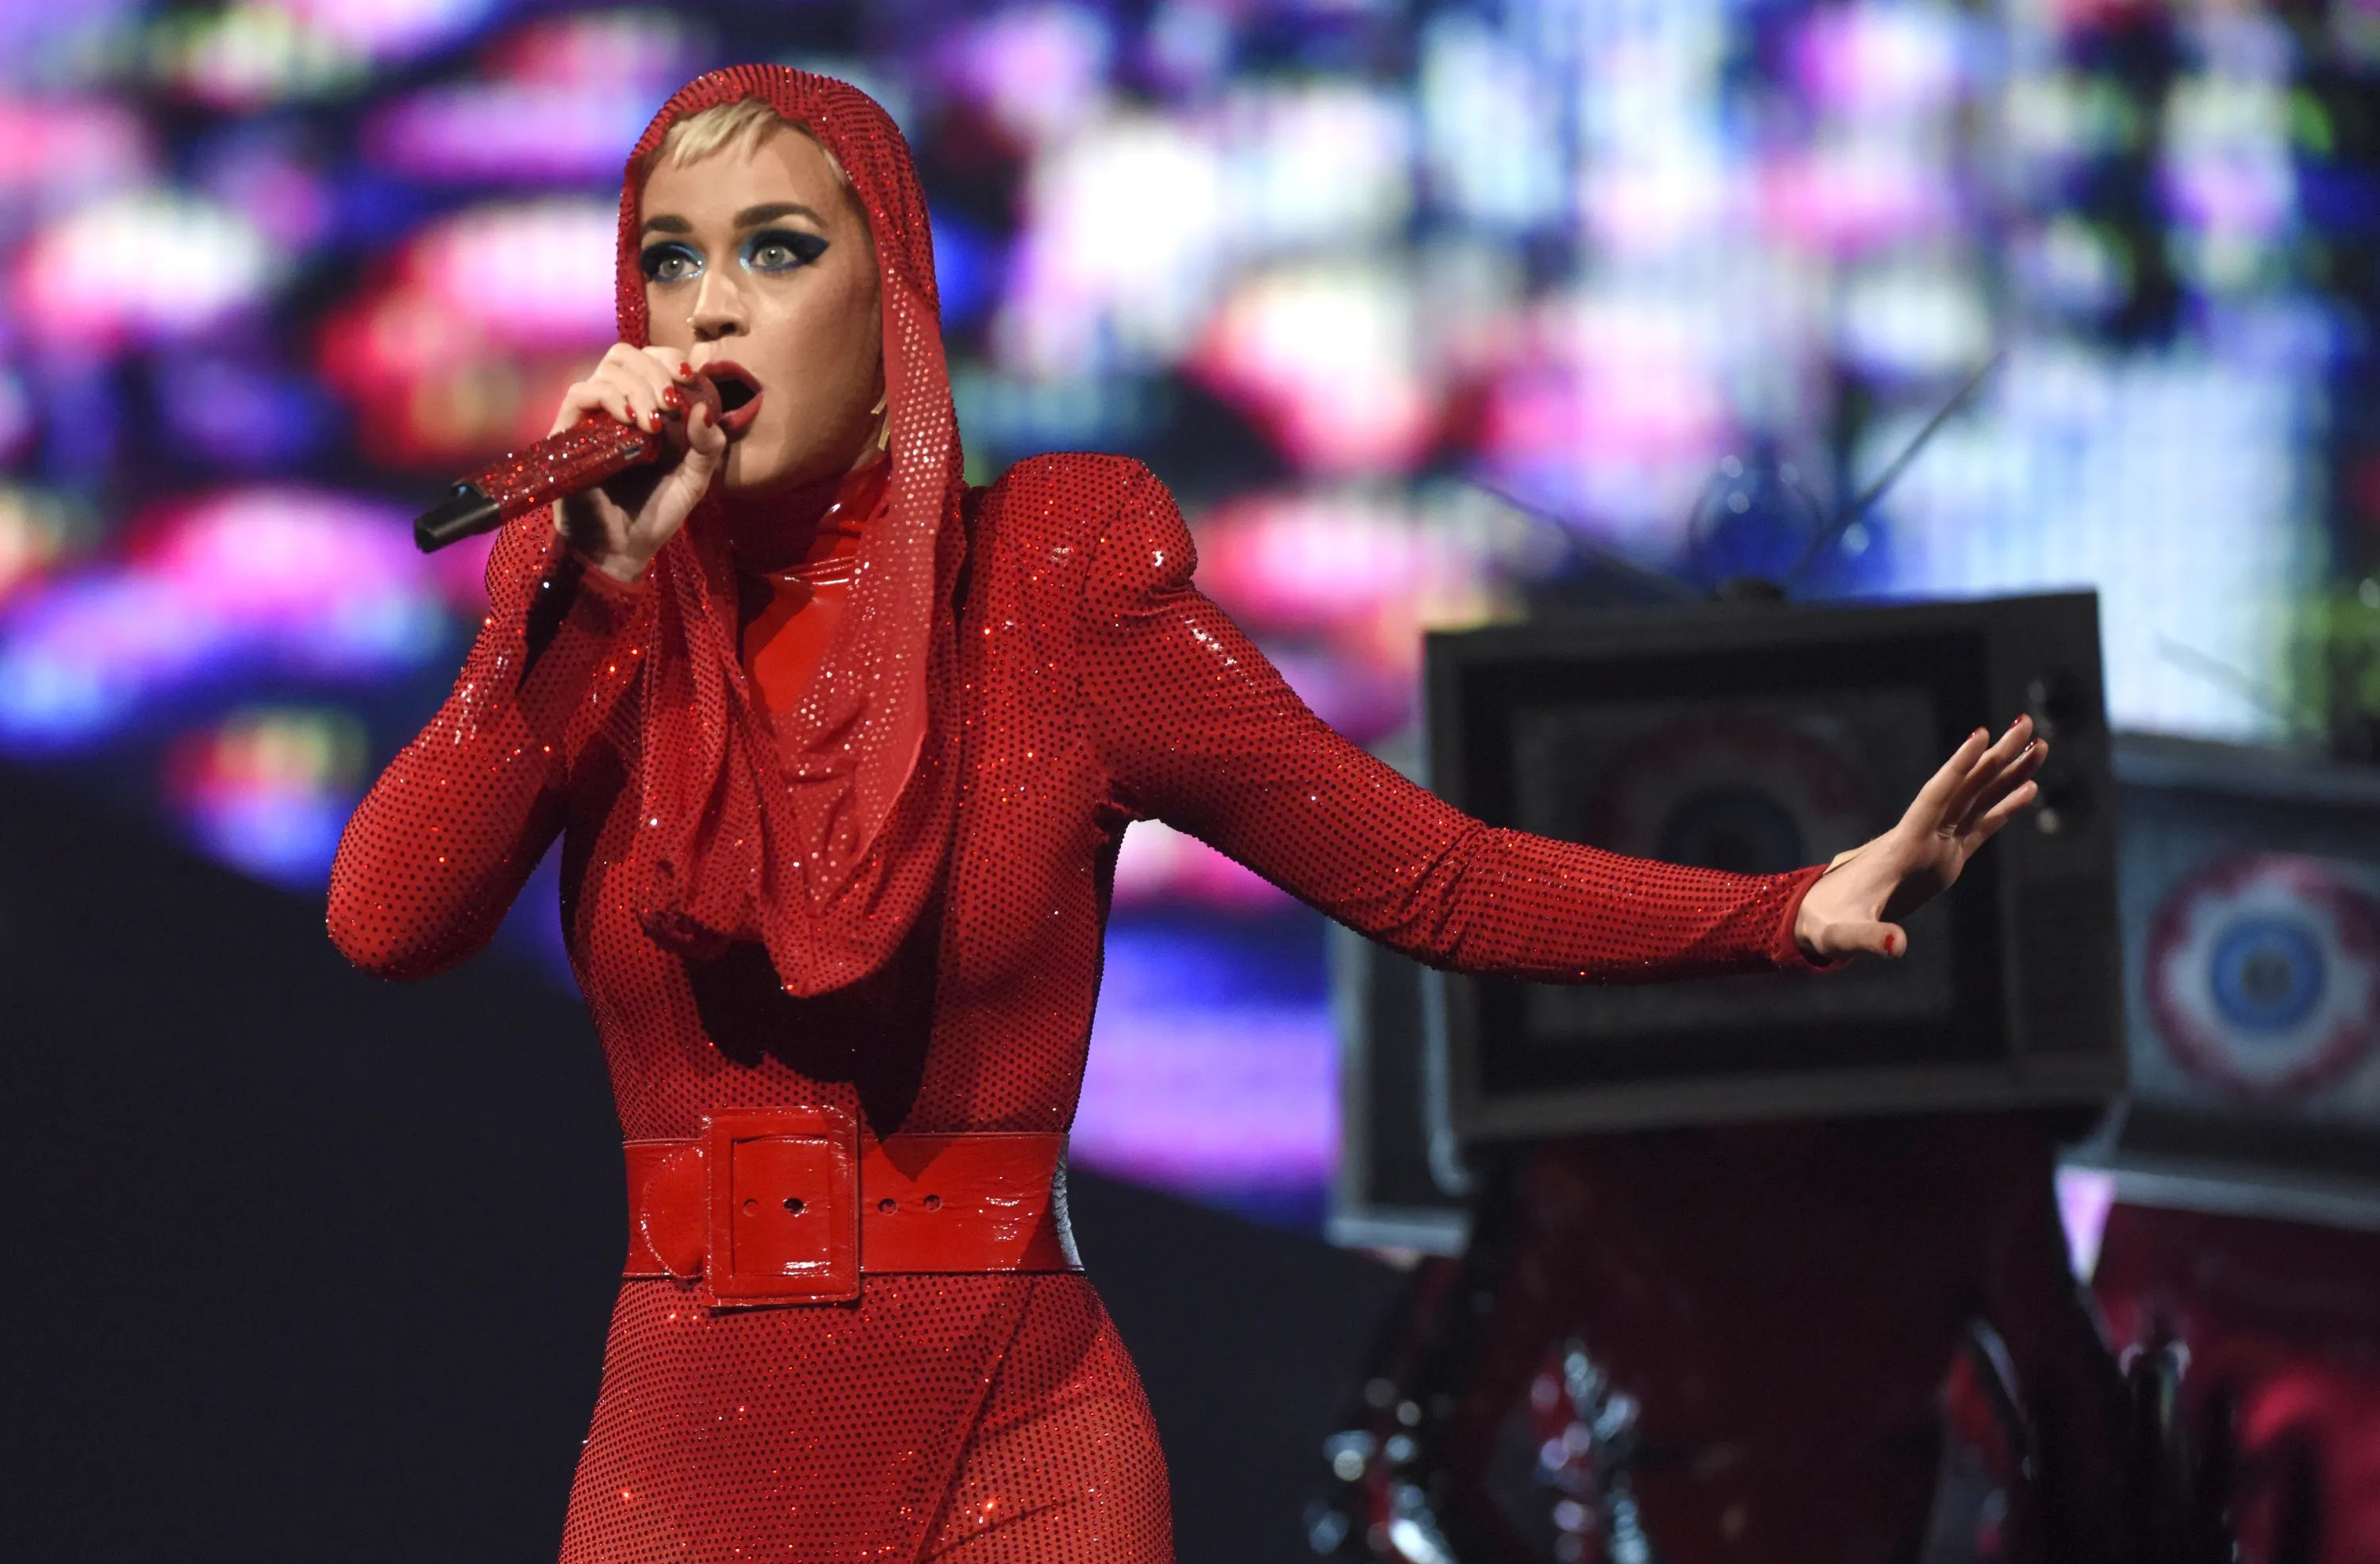 Shocking! Katy Perry Is Reportedly Banned From Entering China To Perform At The Victoria's Secret Fashion Show